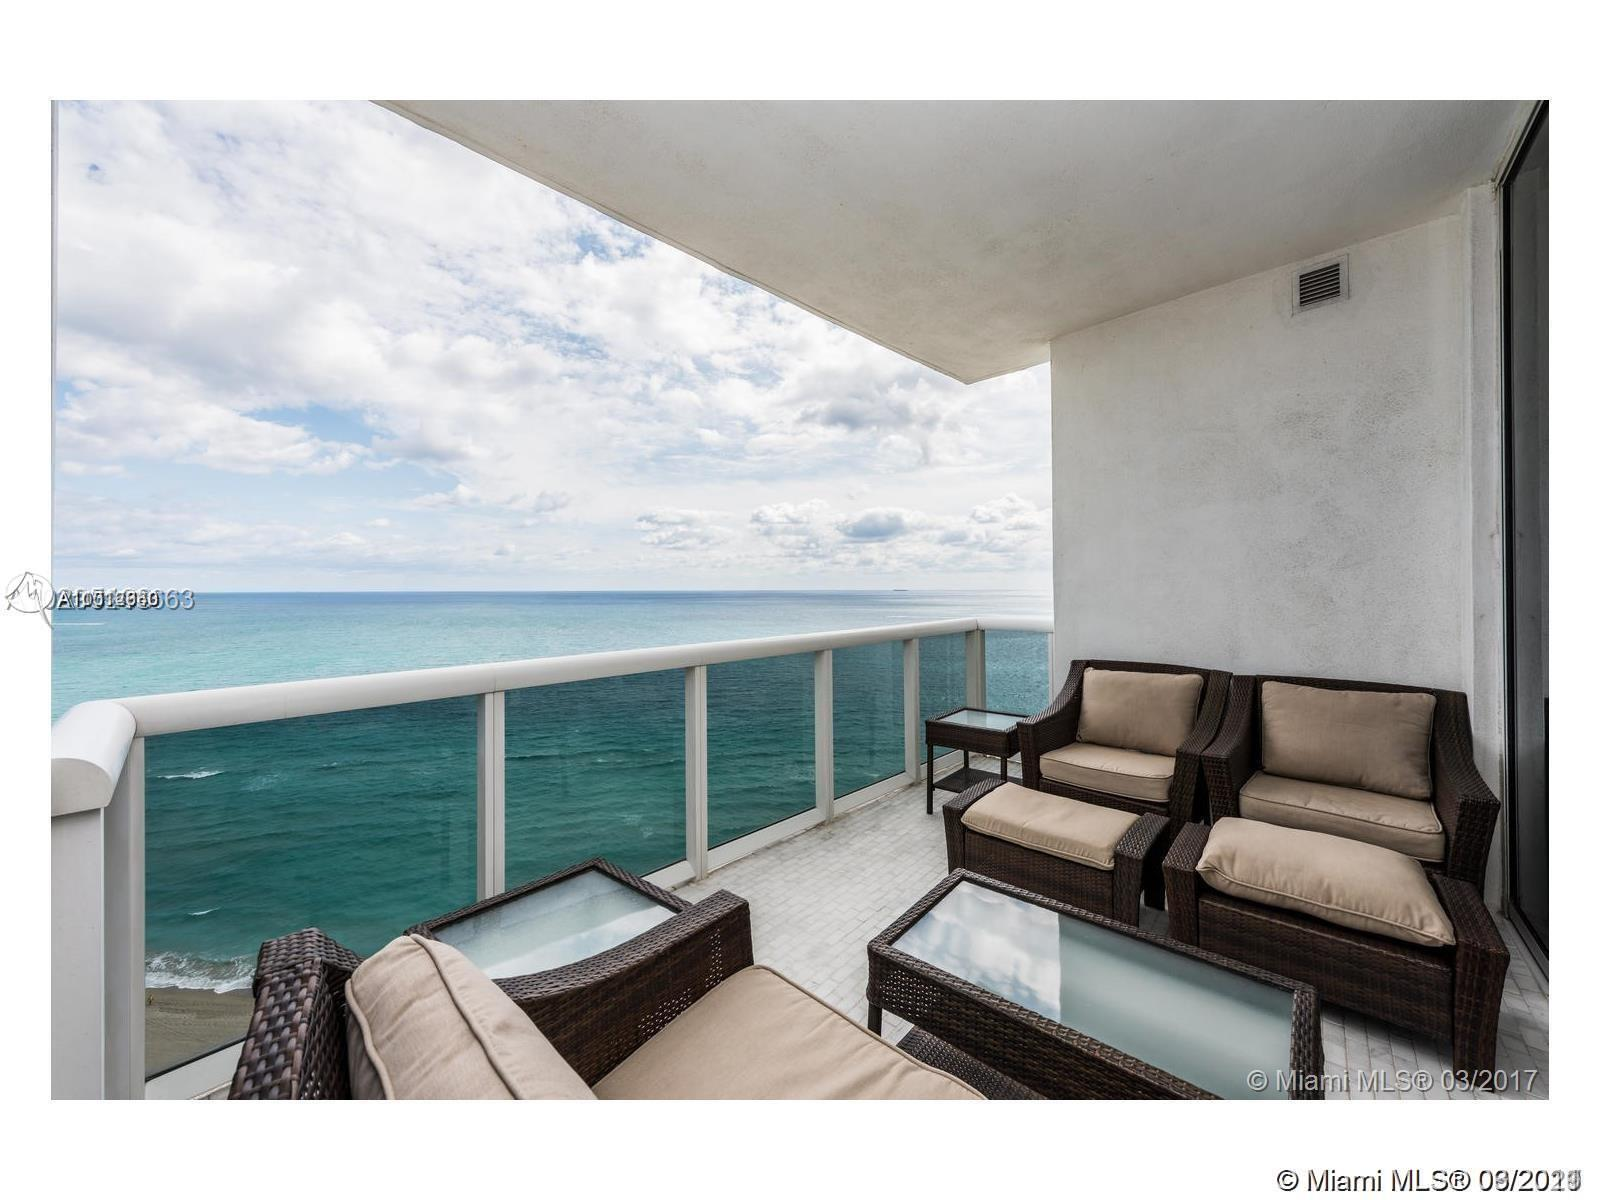 Direct ocean front two bedroom , 2.5 bath unit, split floor plan. Never worry what will be built on the North side of Royale, because your ocean views are guaranteed, can see the coast line to Fort Lauderdale. Master bedroom has his and her separate bathrooms, separate laundry room, large kitchen with double oven, built in coffee machine, two pantries, and lots of storage. PRIVATE ELEVATOR FOYER finished with same flooring as unit, no neighbor! This unit wont last!